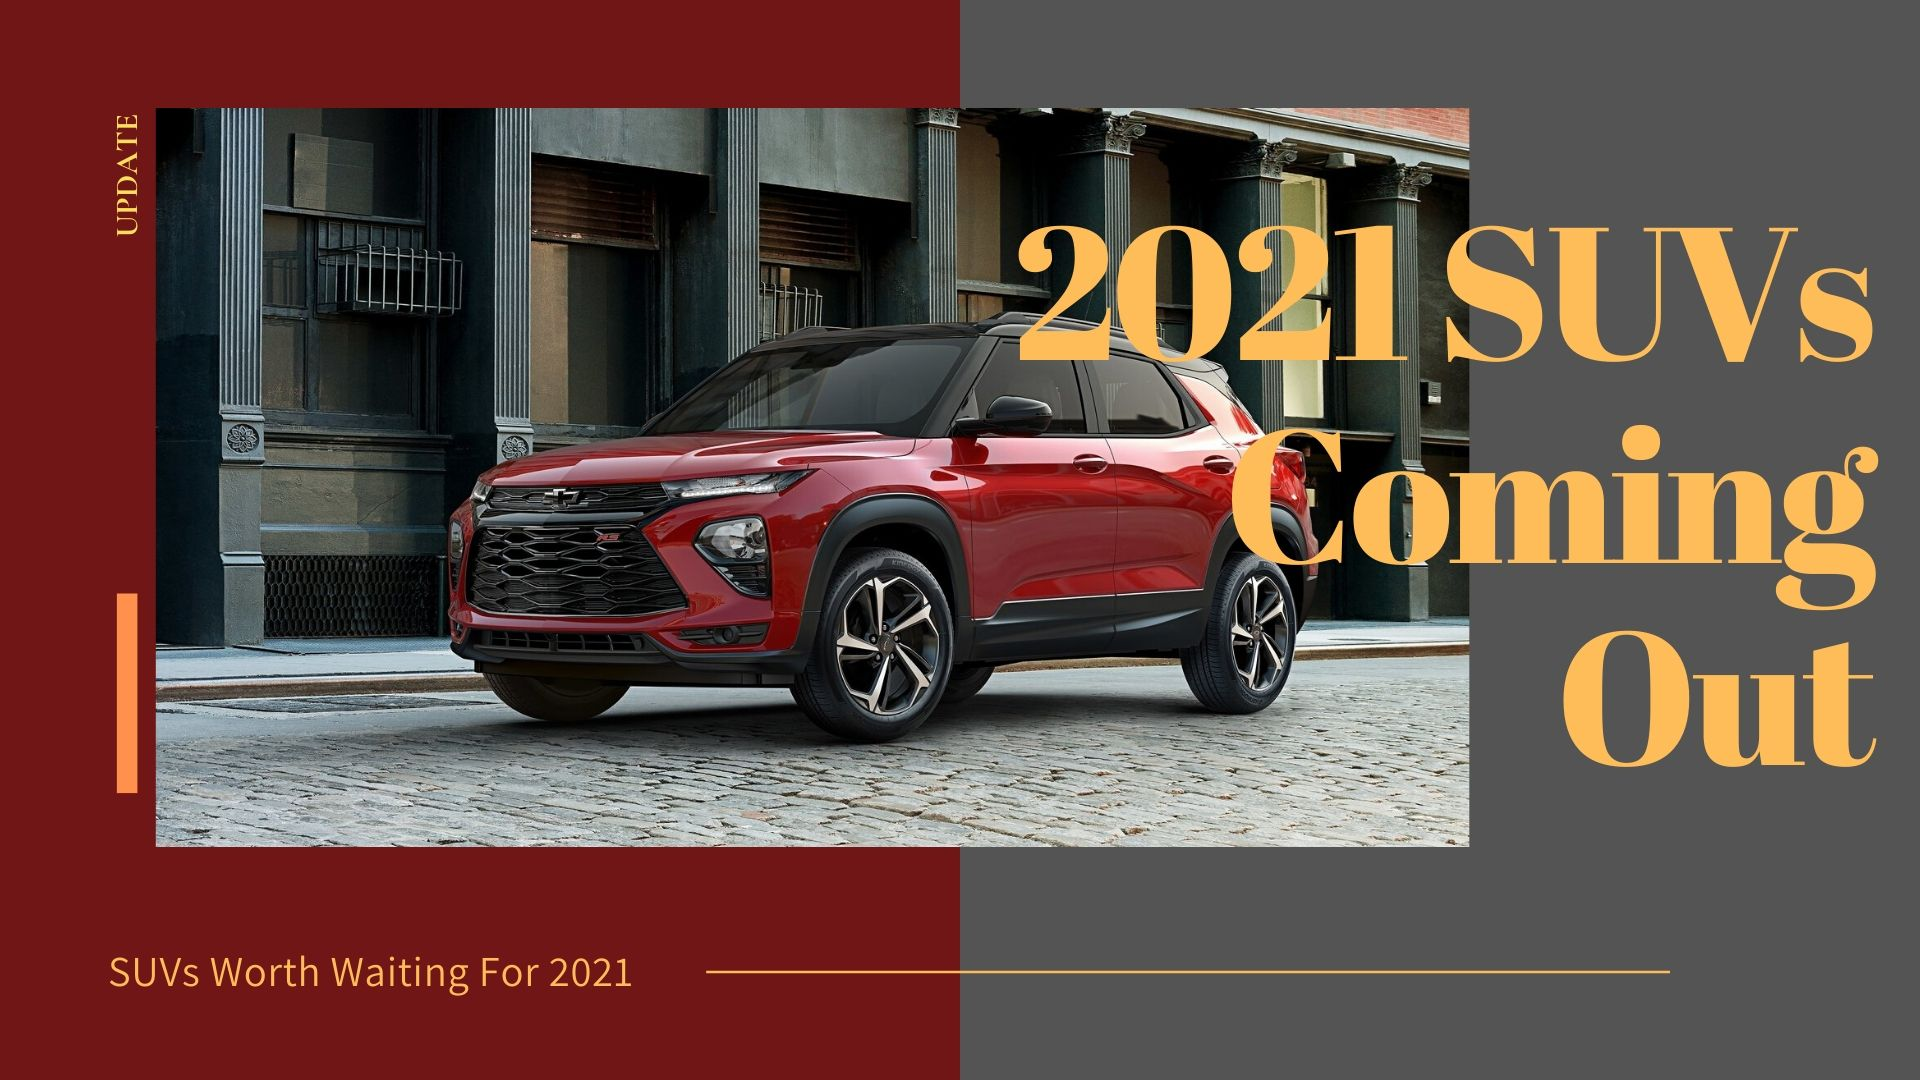 2021 SUVs Coming Out